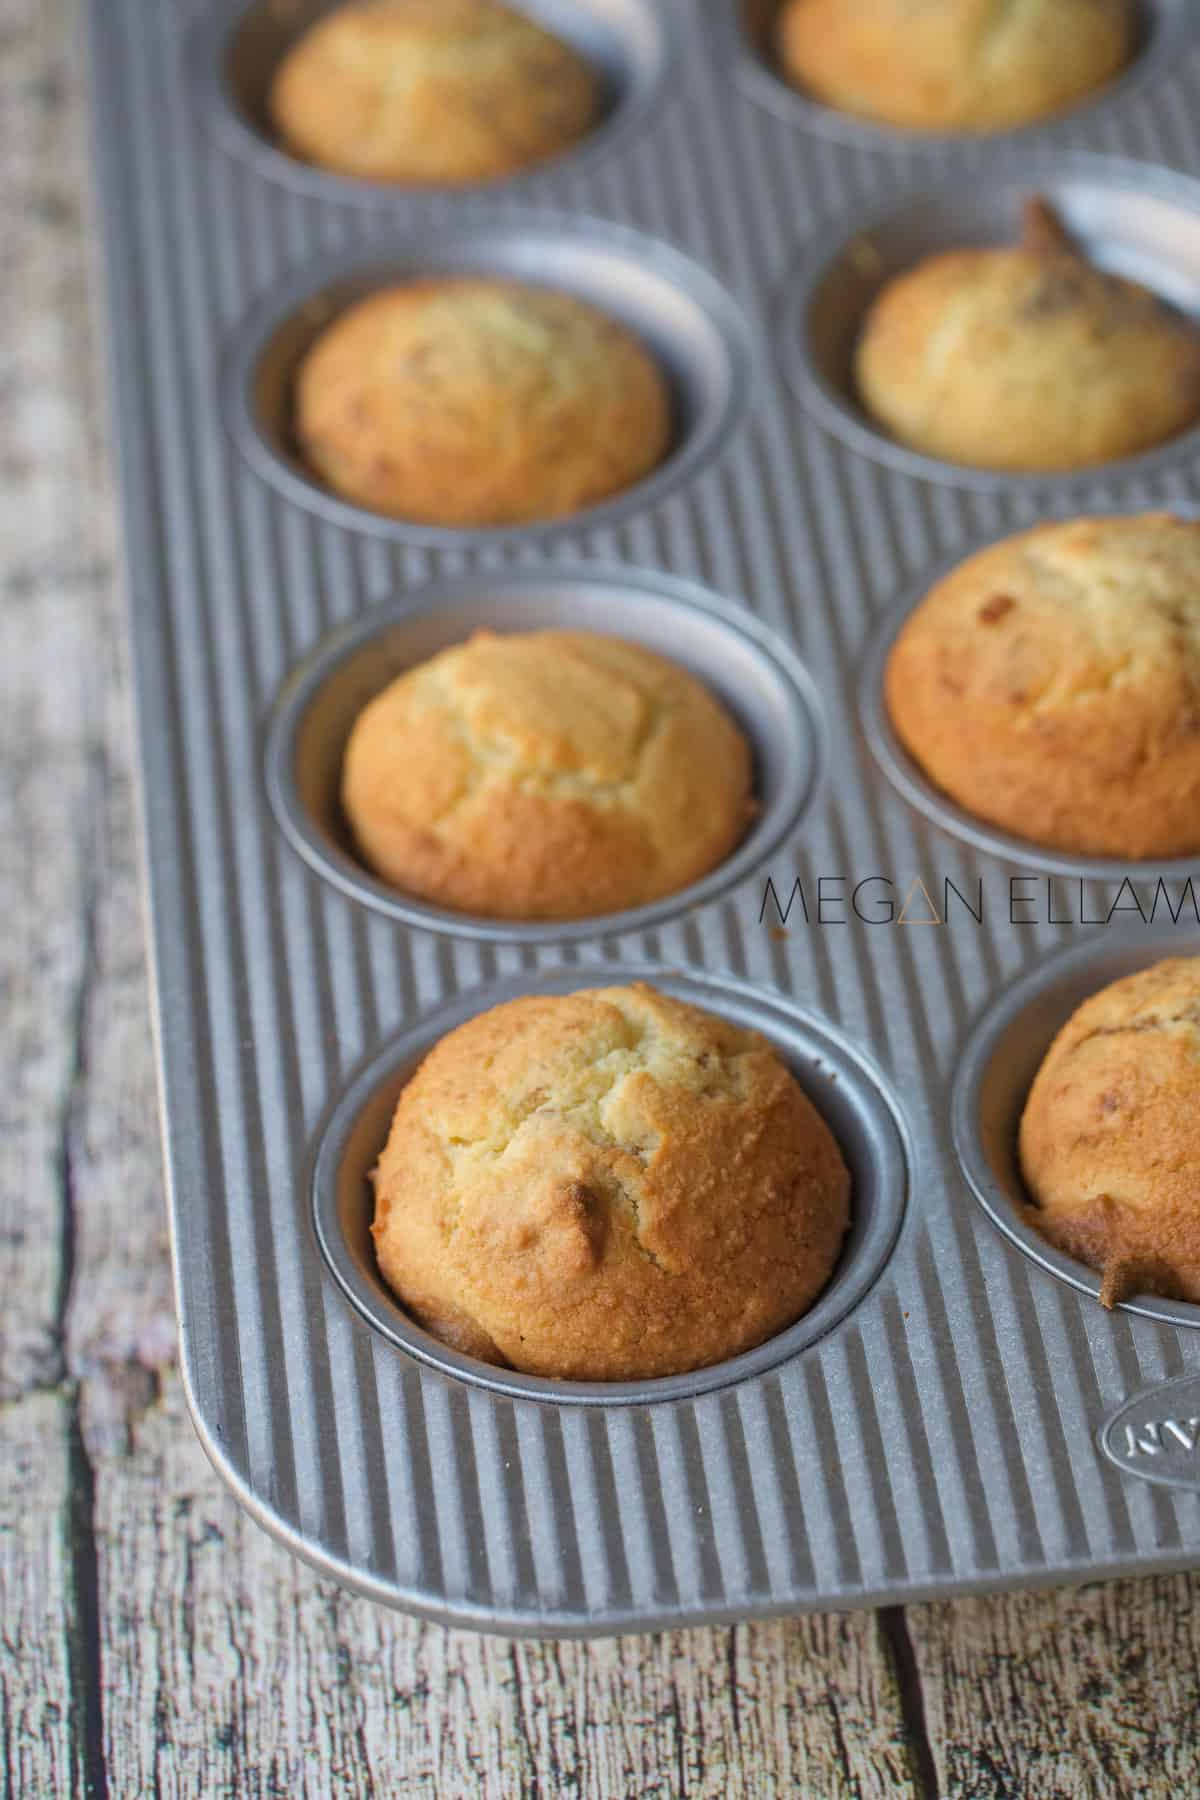 Baked cupcakes in a muffin tray.